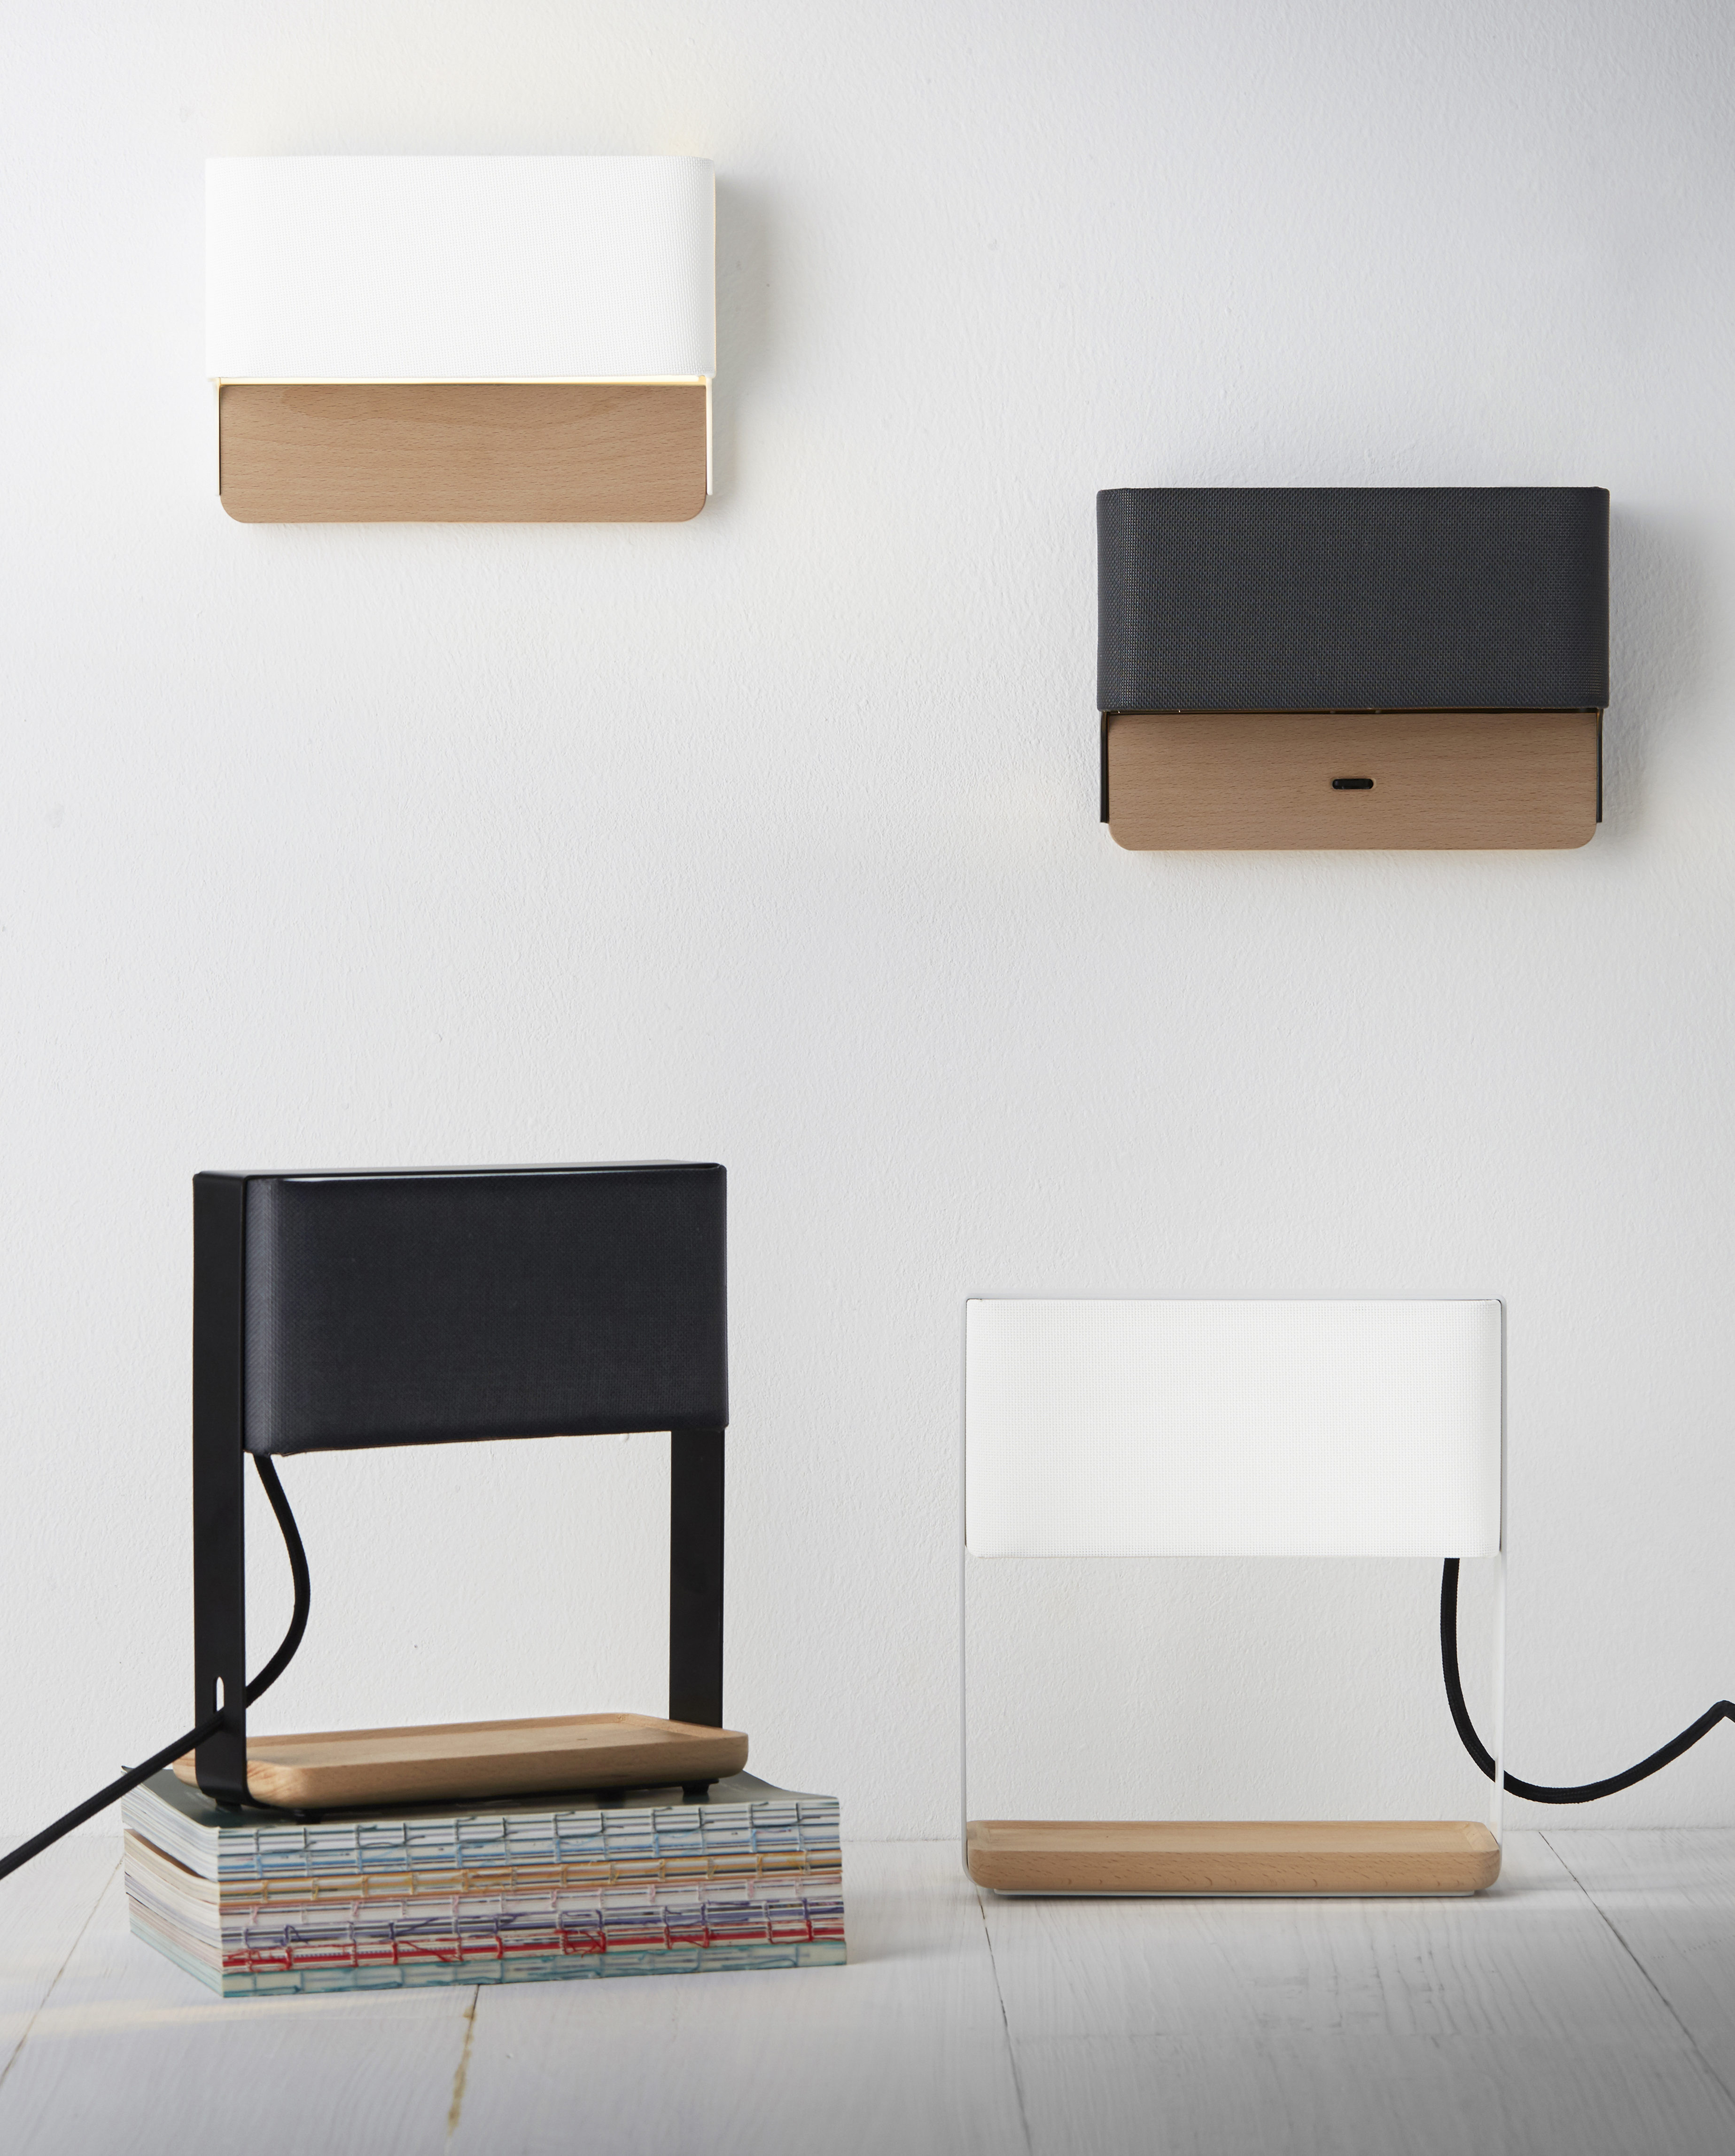 TheQuadra Collection by Roger Vancells